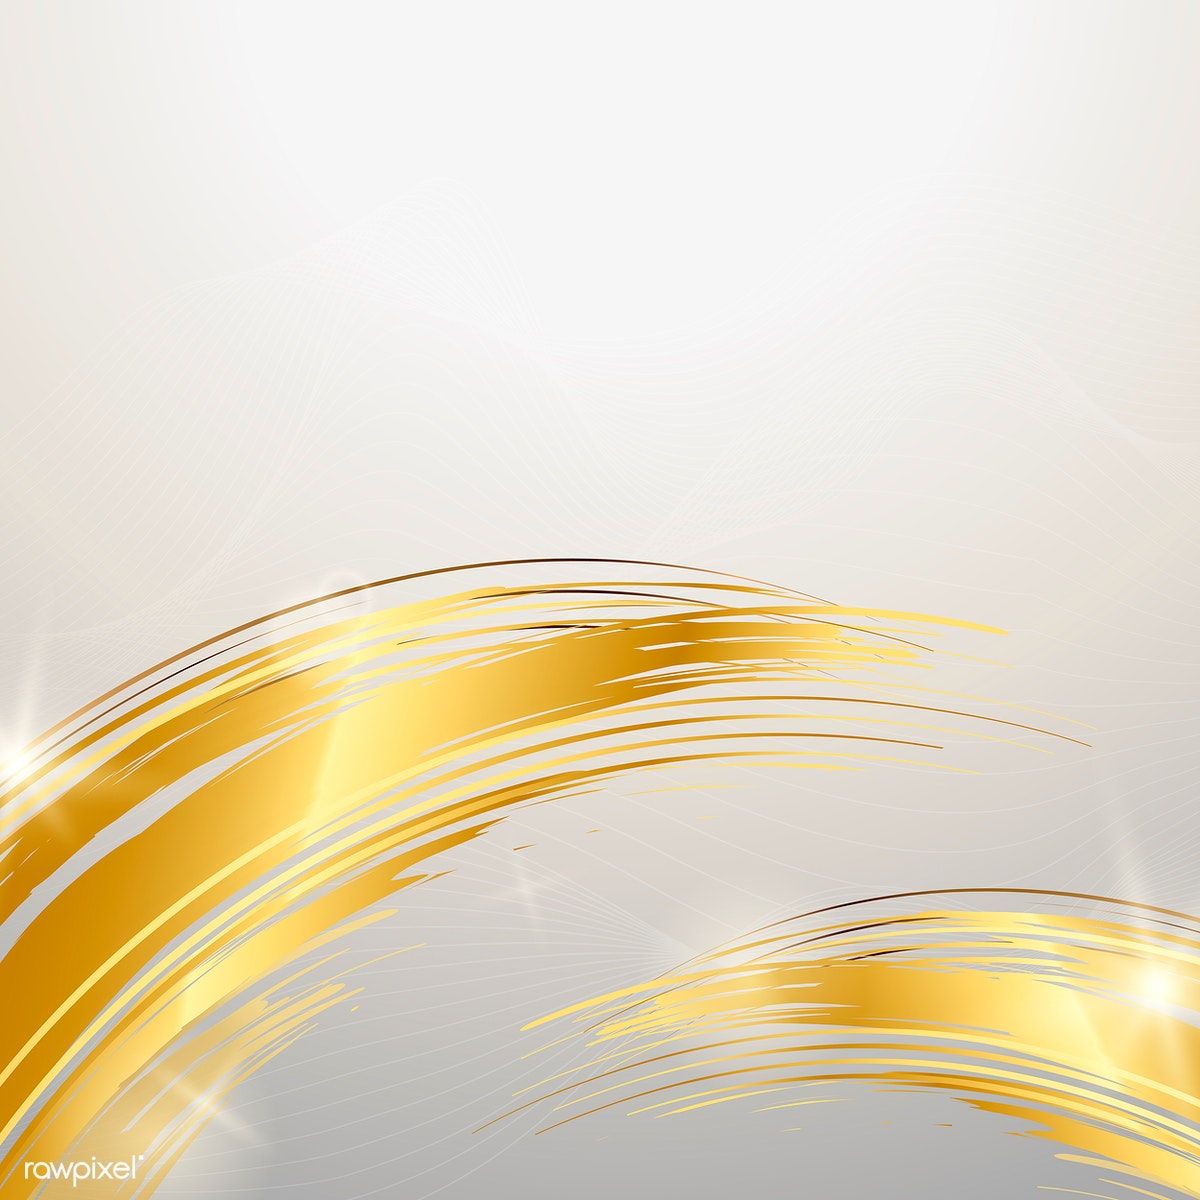 gold wave abstract background illustration free stock